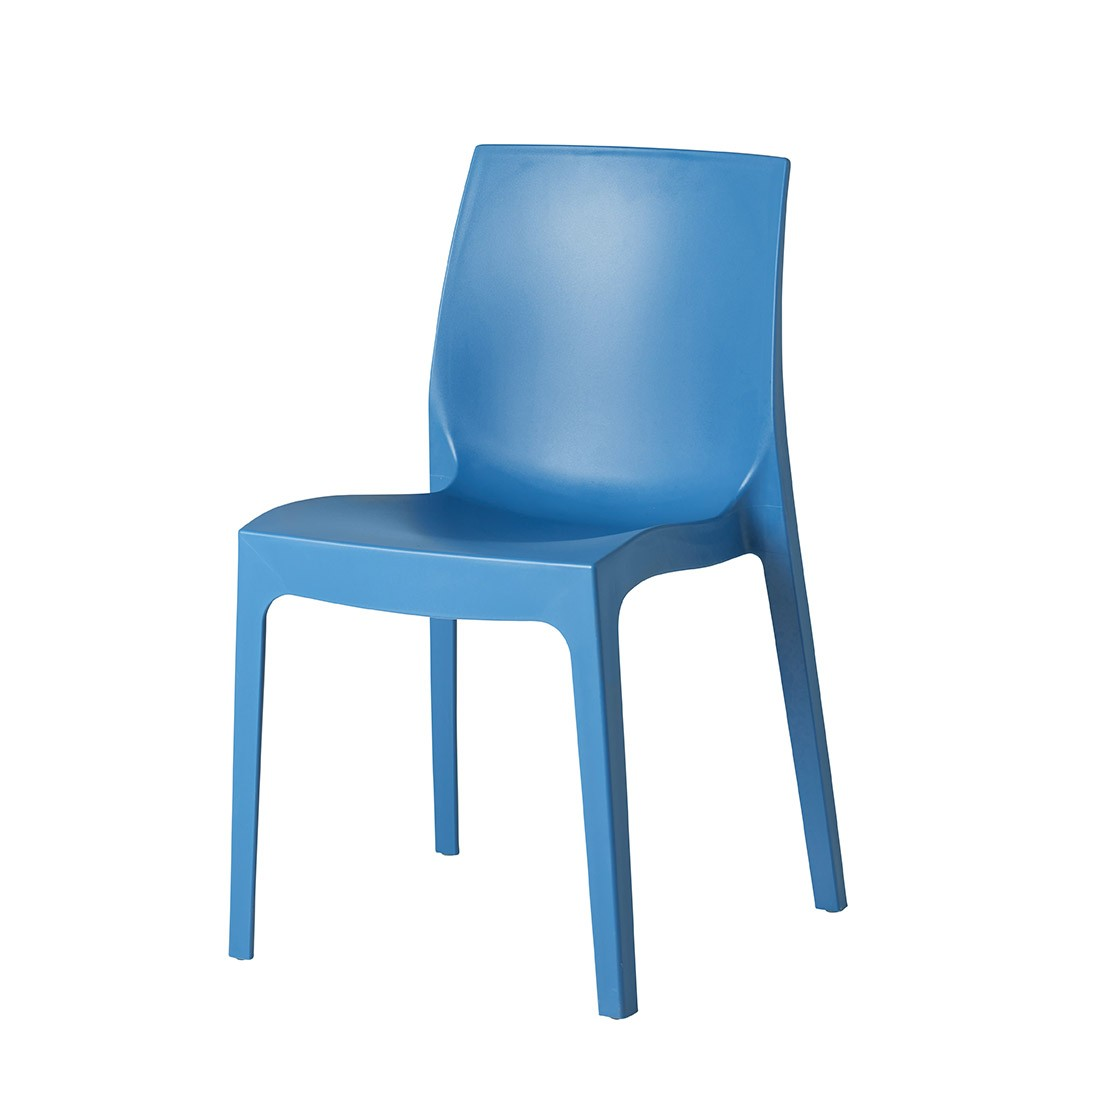 Strata Outdoor Stacking Chair Blue Contract Furniture Manufacturers